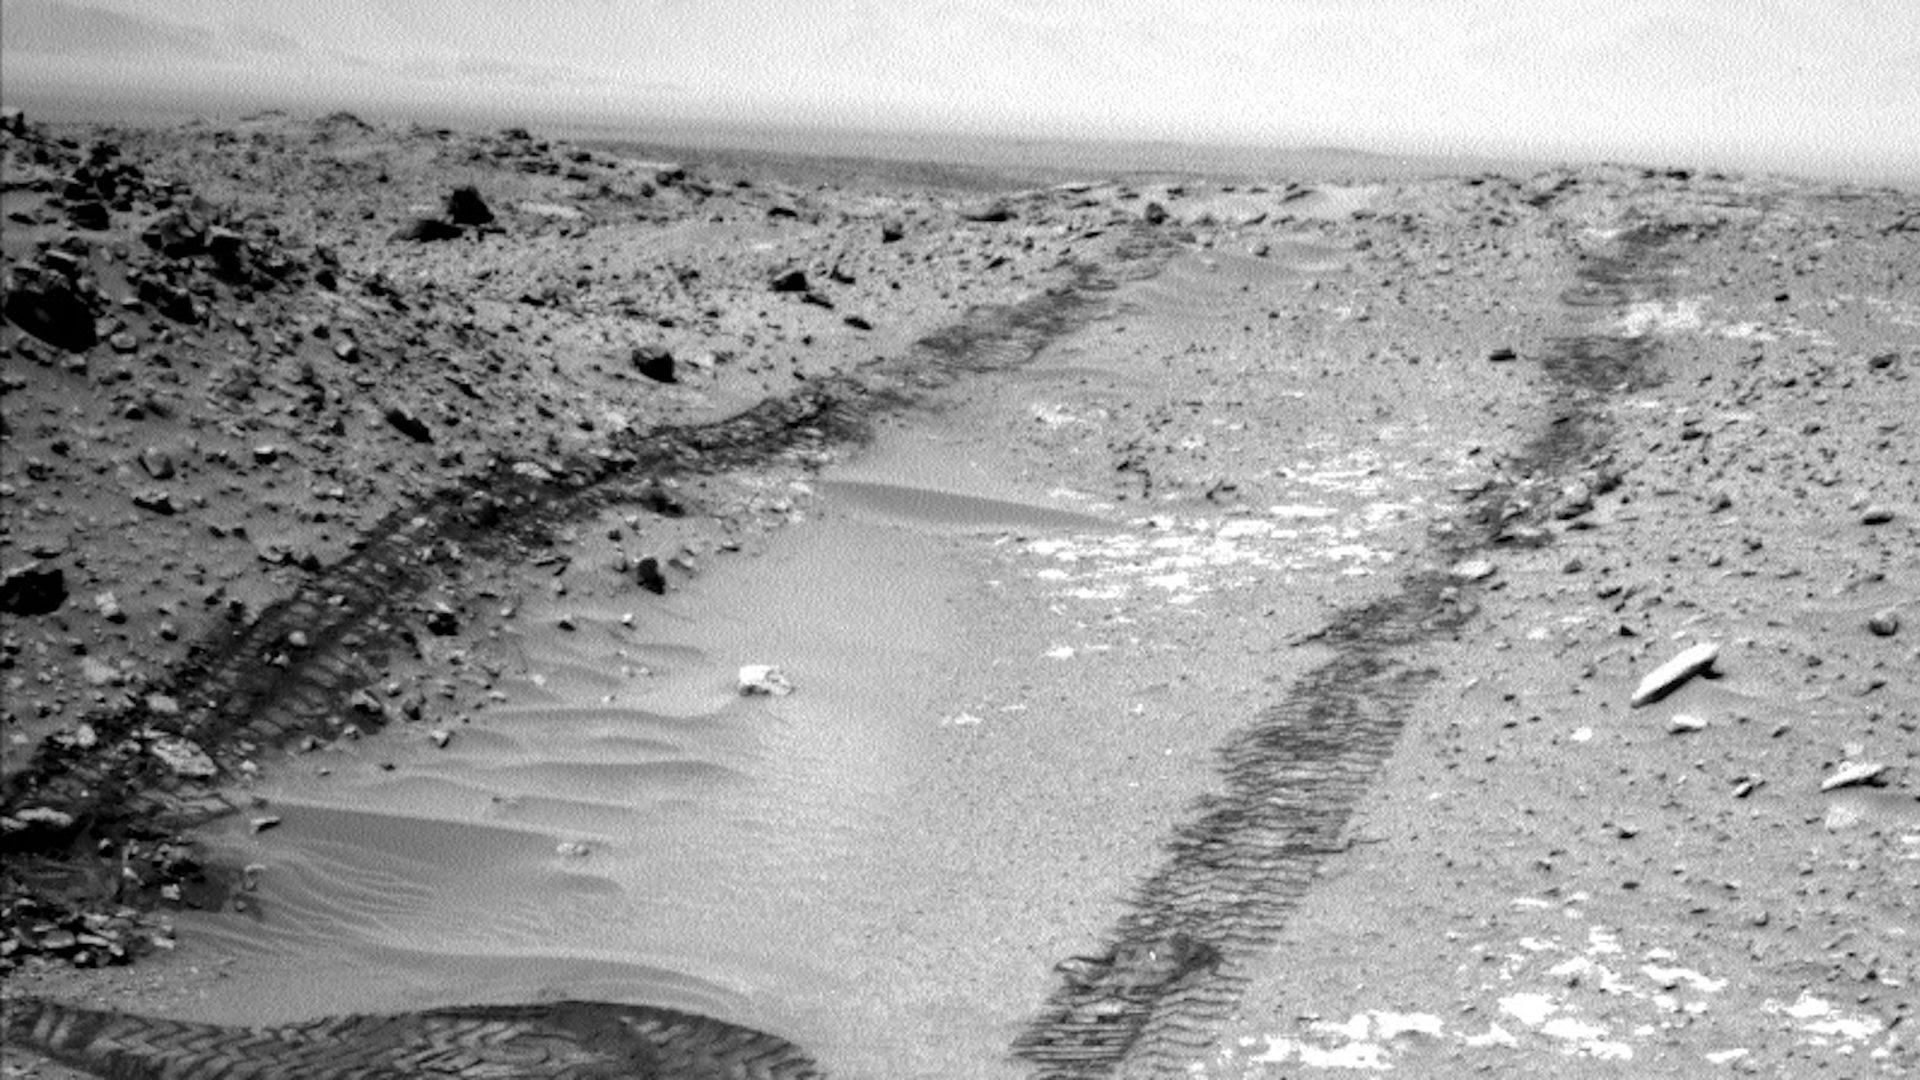 NASA will send your name to Mars aboard its next rover